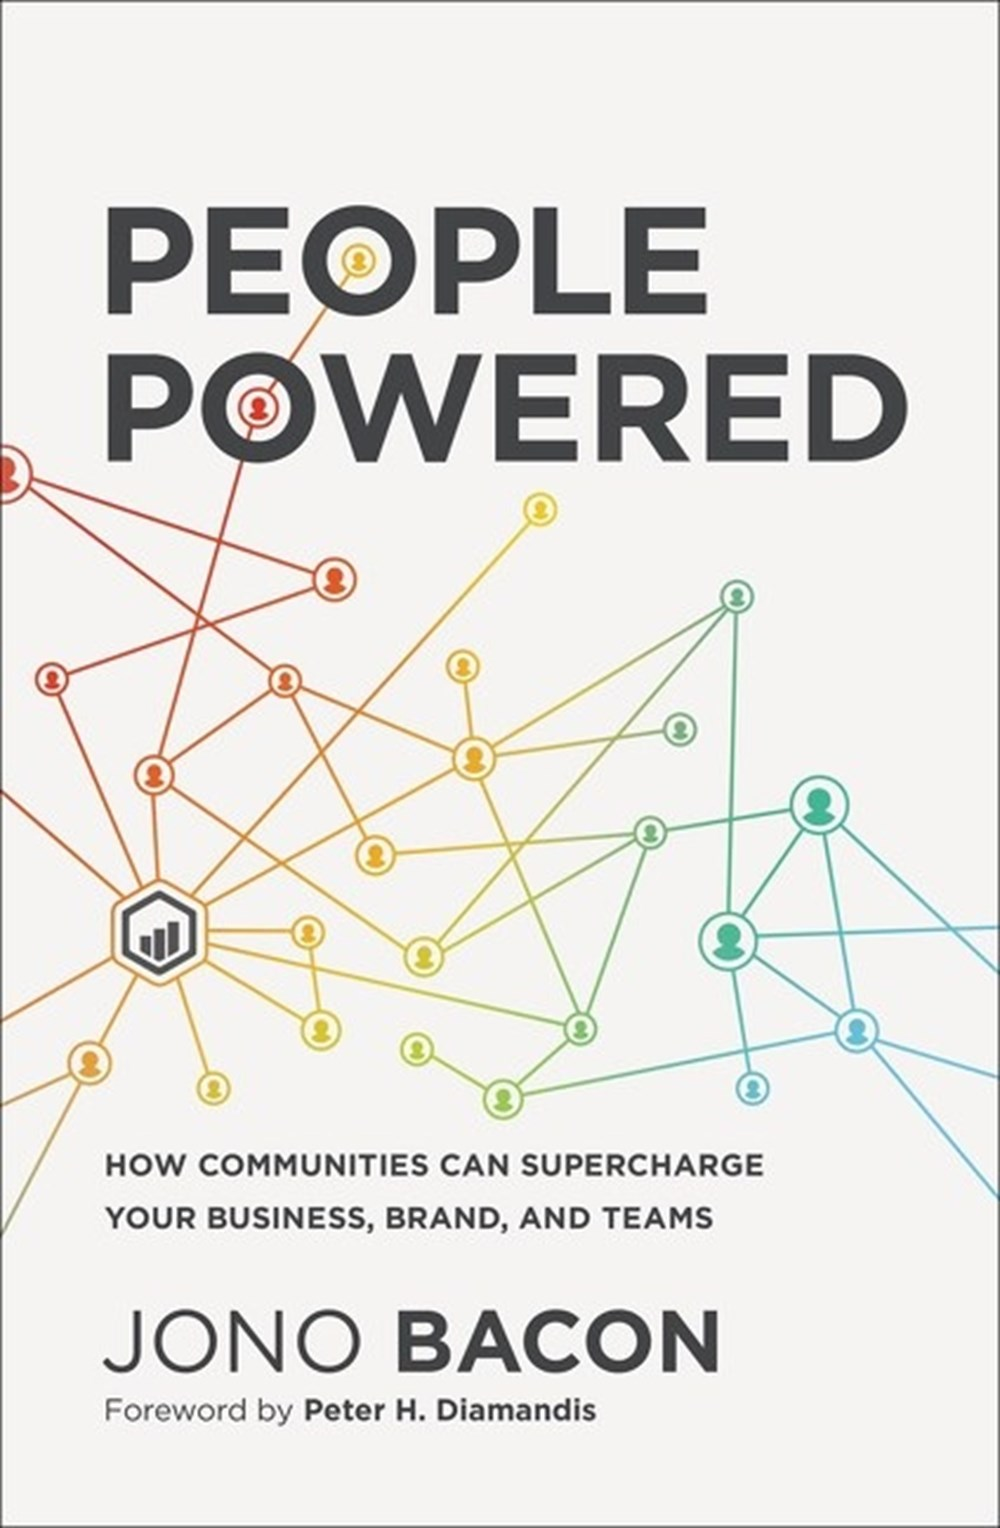 People Powered How Communities Can Supercharge Your Business, Brand, and Teams